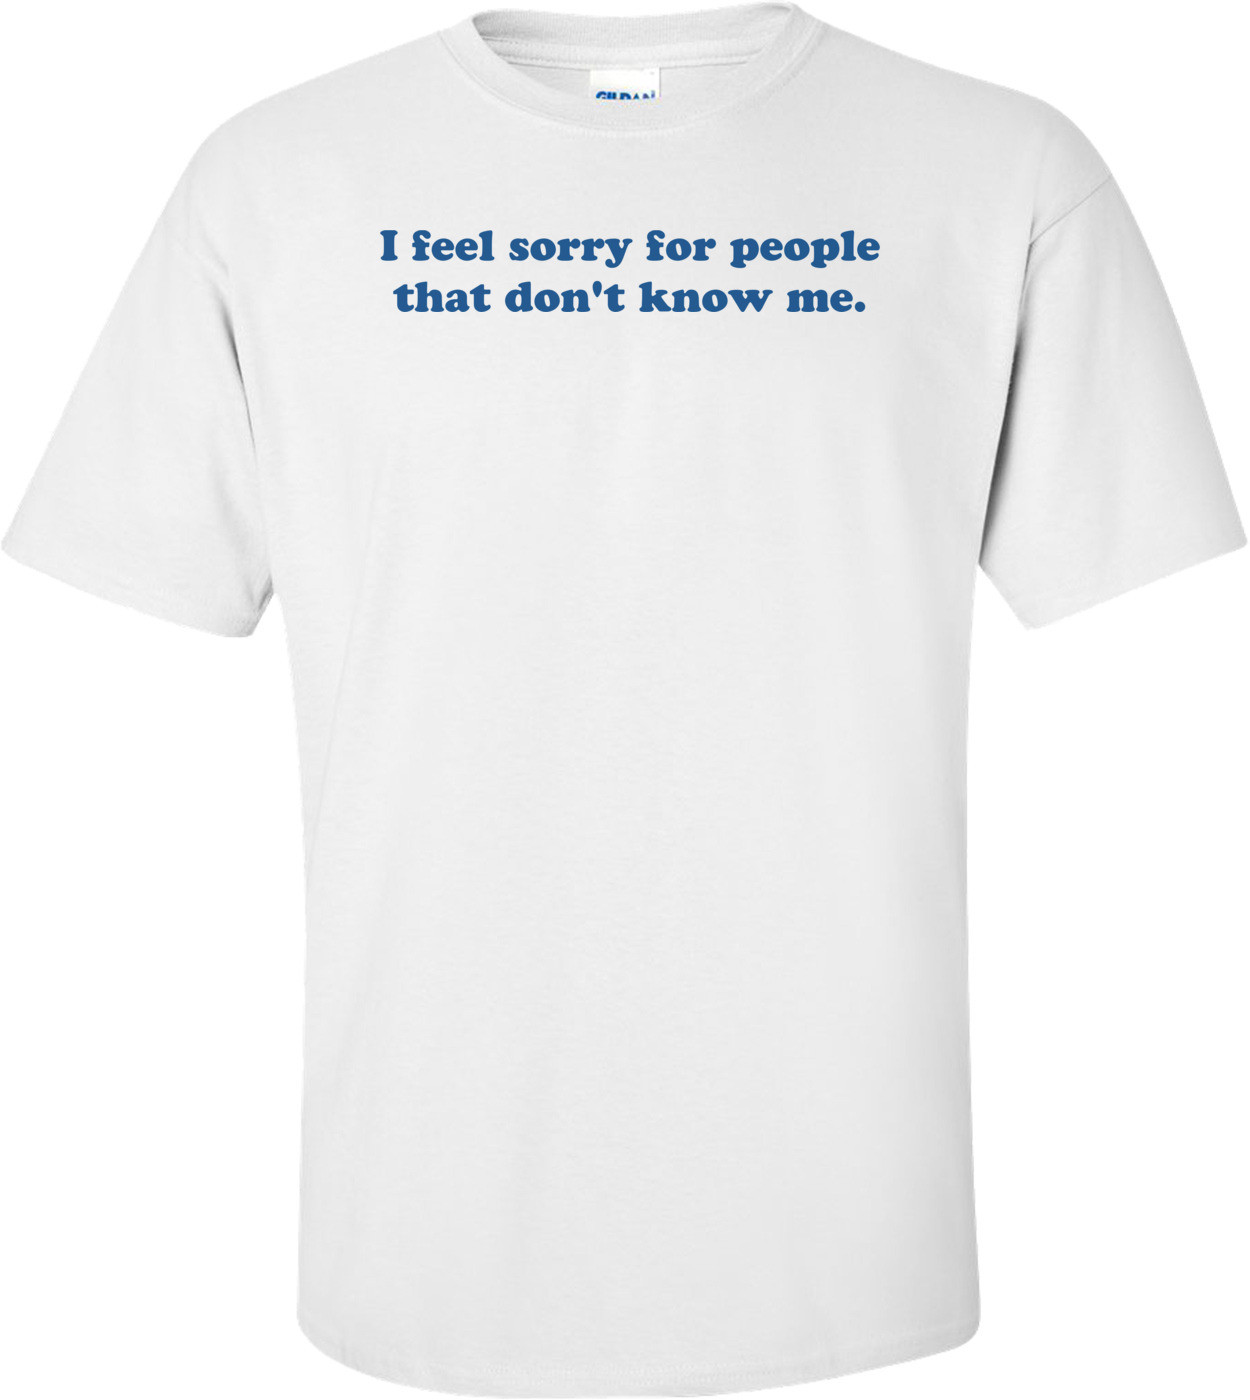 I feel sorry for people that don't know me. Shirt